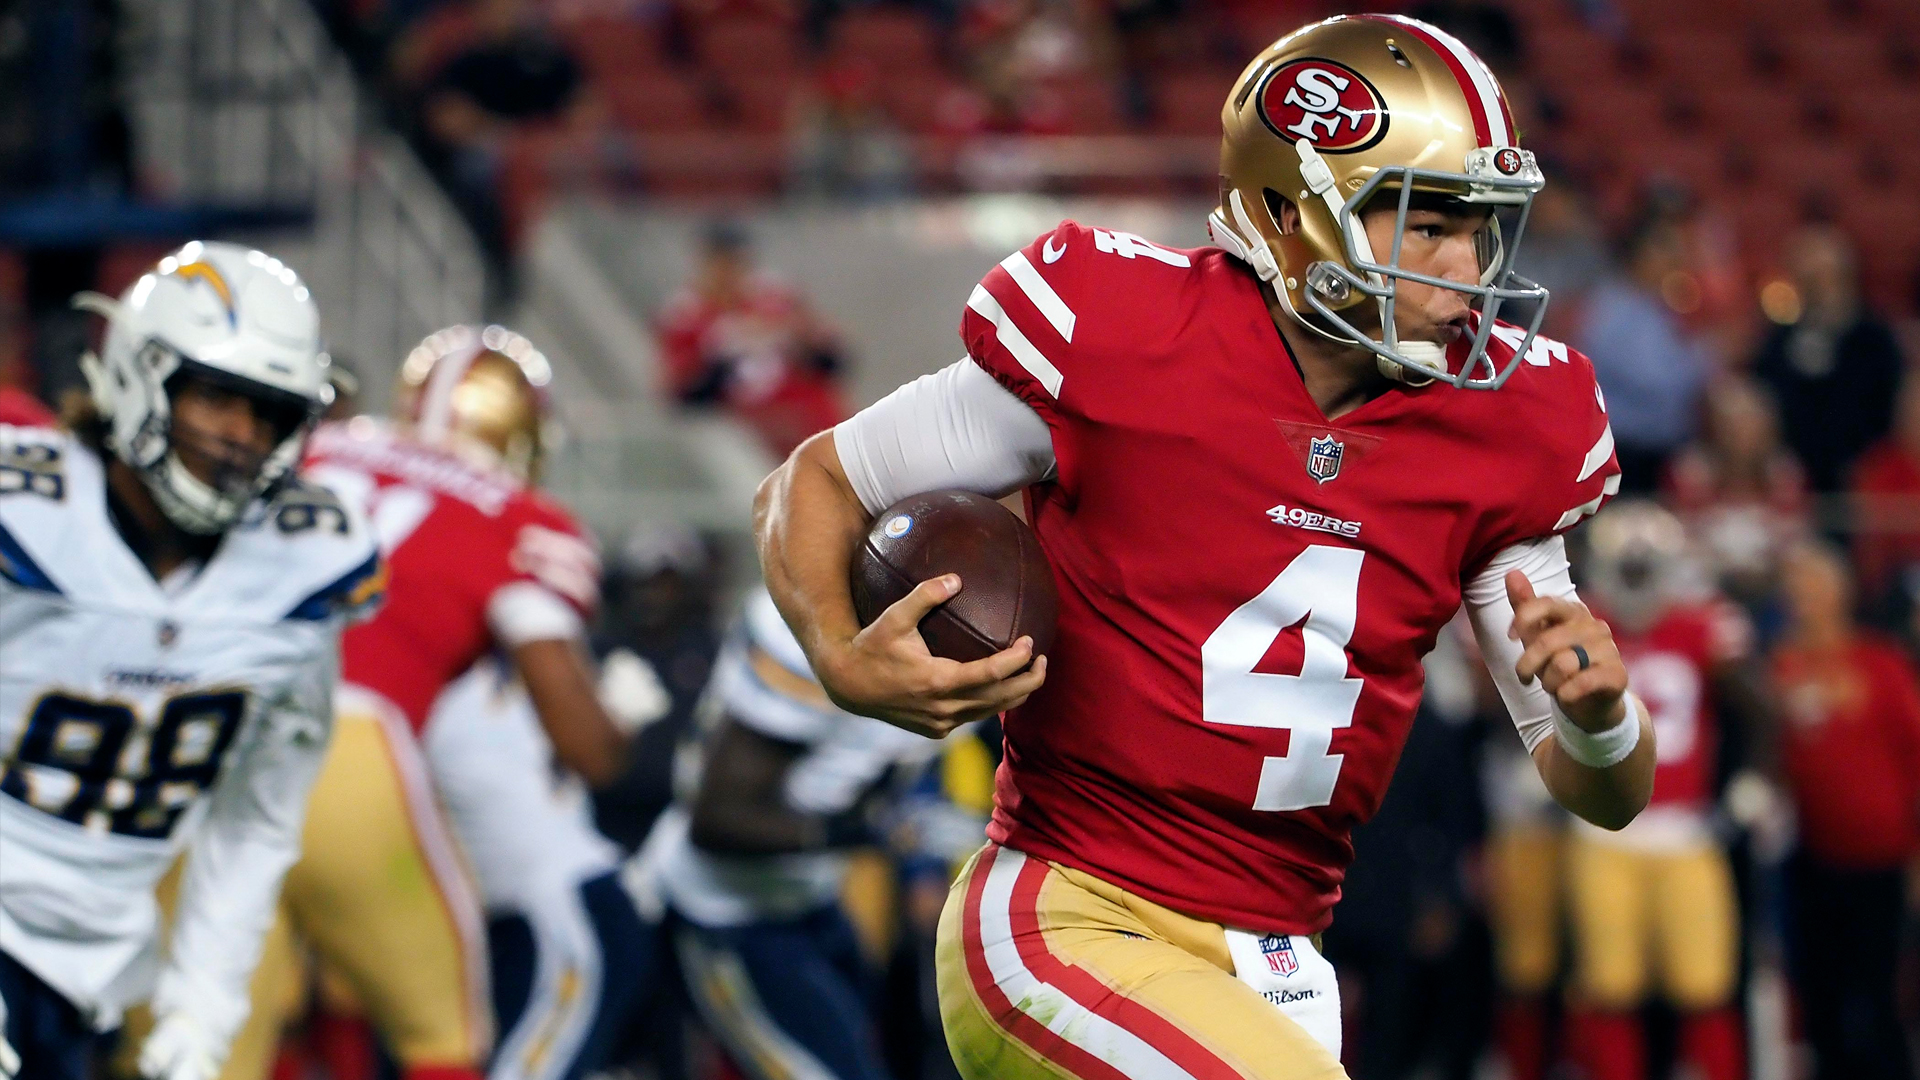 Nick Mullens looks to lead the 49ers to victory against the Giants this weekend.